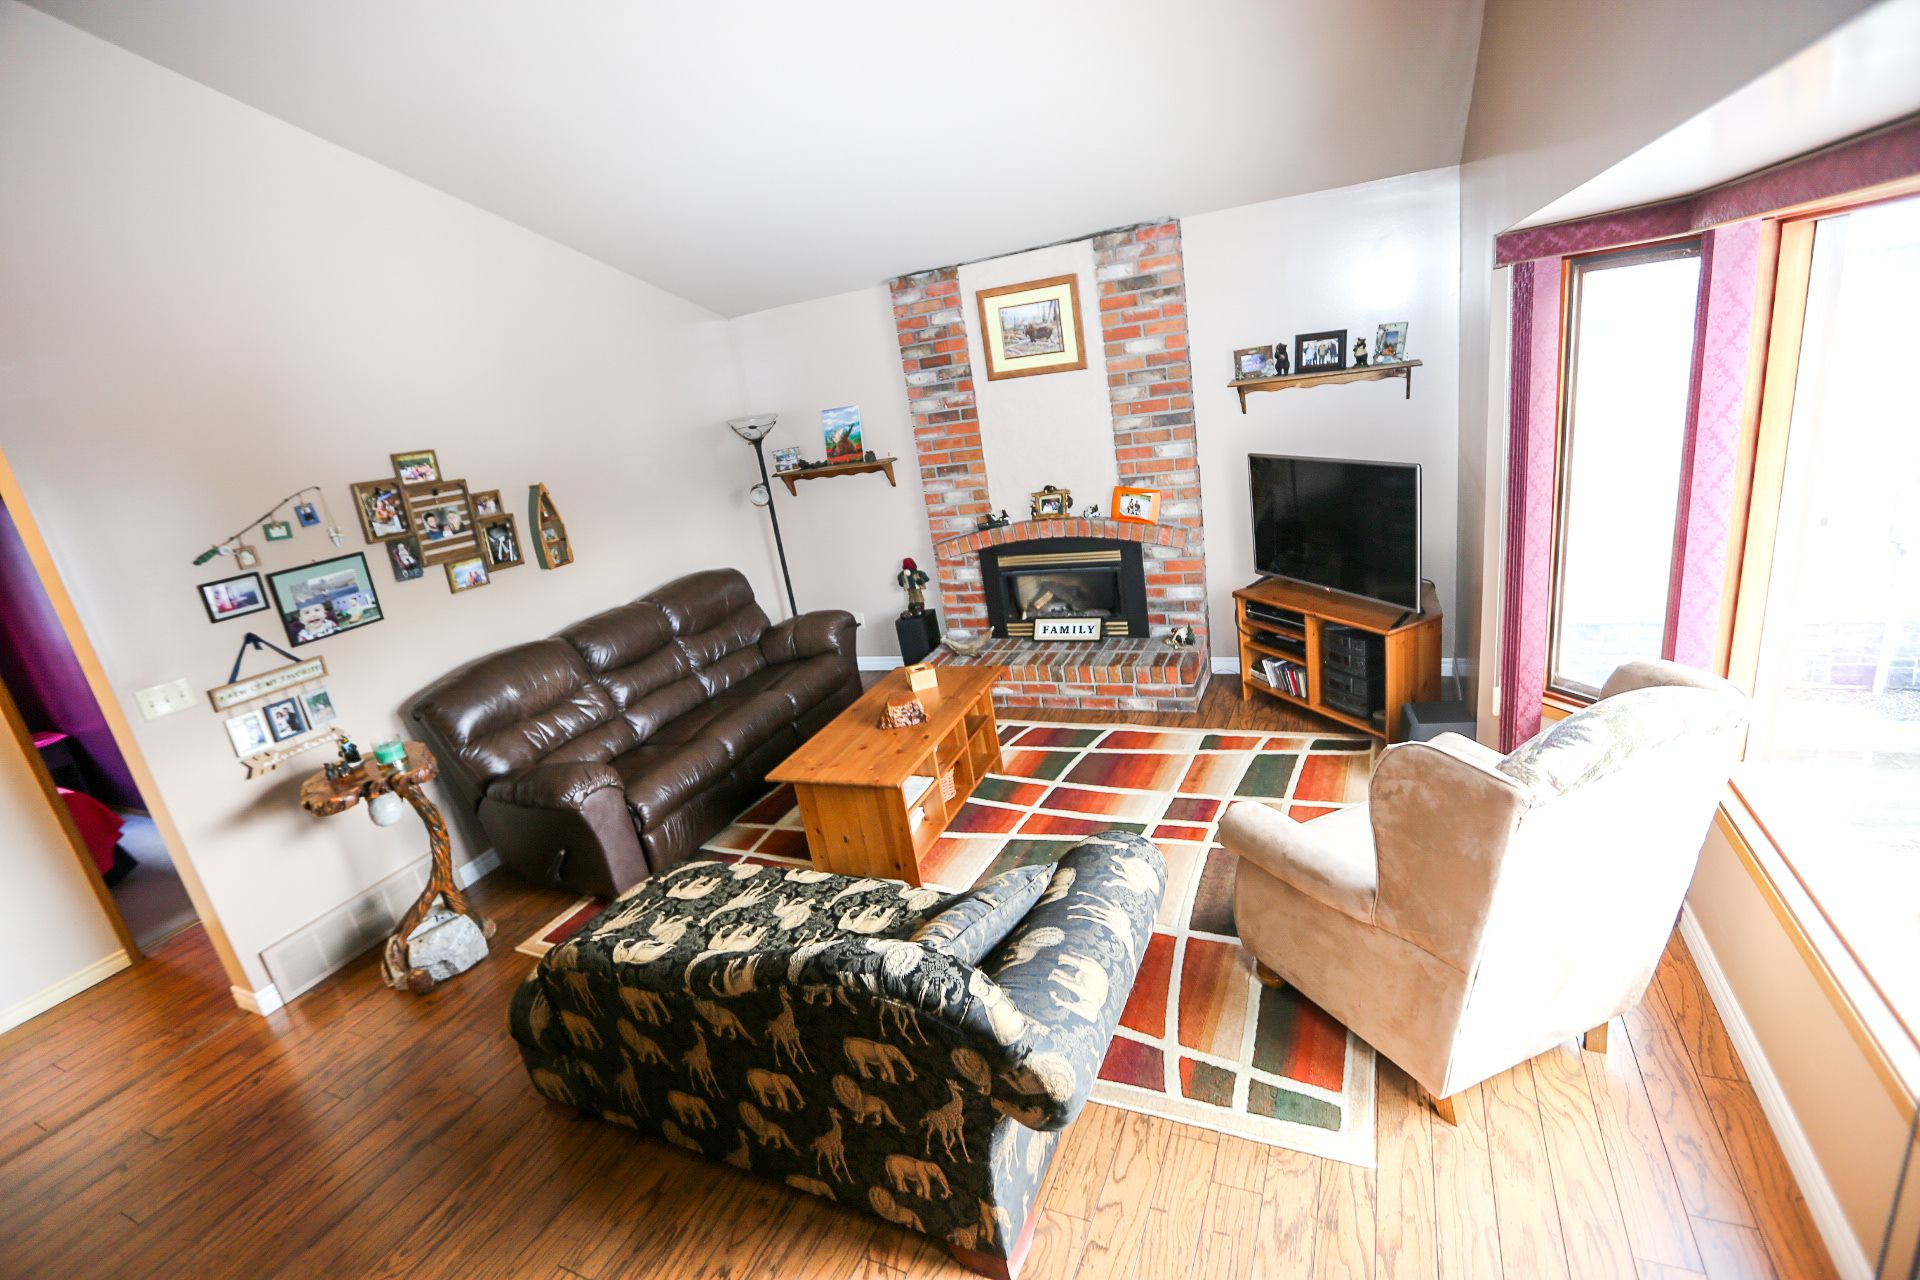 Photo 12: Photos: 434 ROBIN DRIVE: BARRIERE House for sale (NORTH EAST)  : MLS®# 160553